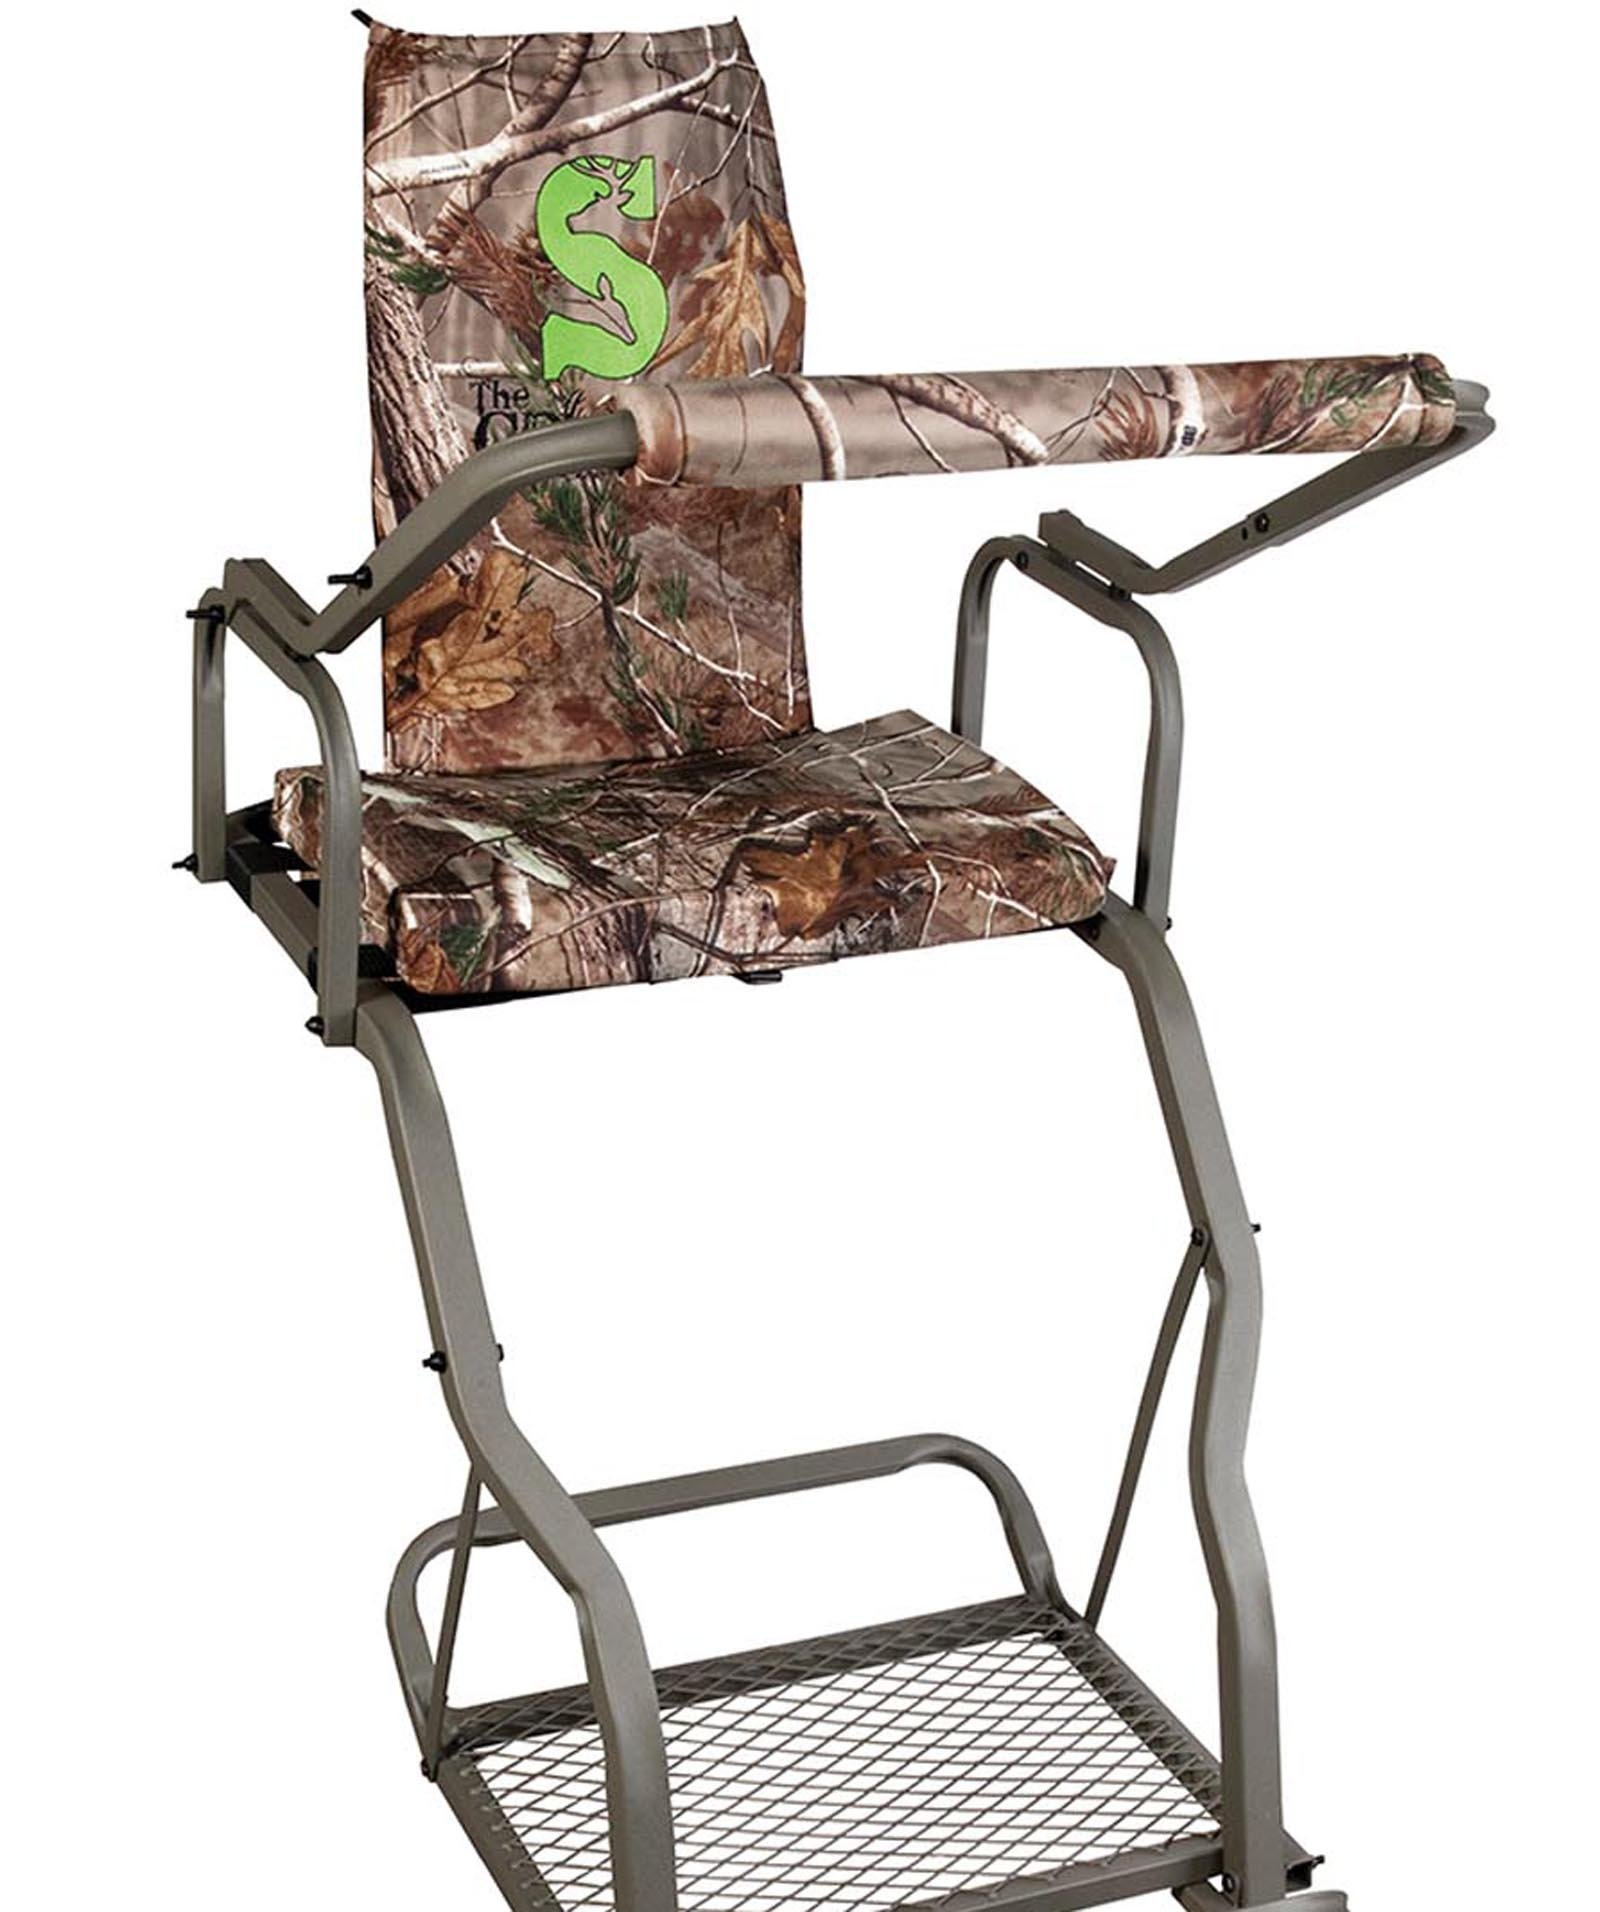 Summit Solo Deluxe Ladder Stand by Summit Treestands (Image #2)